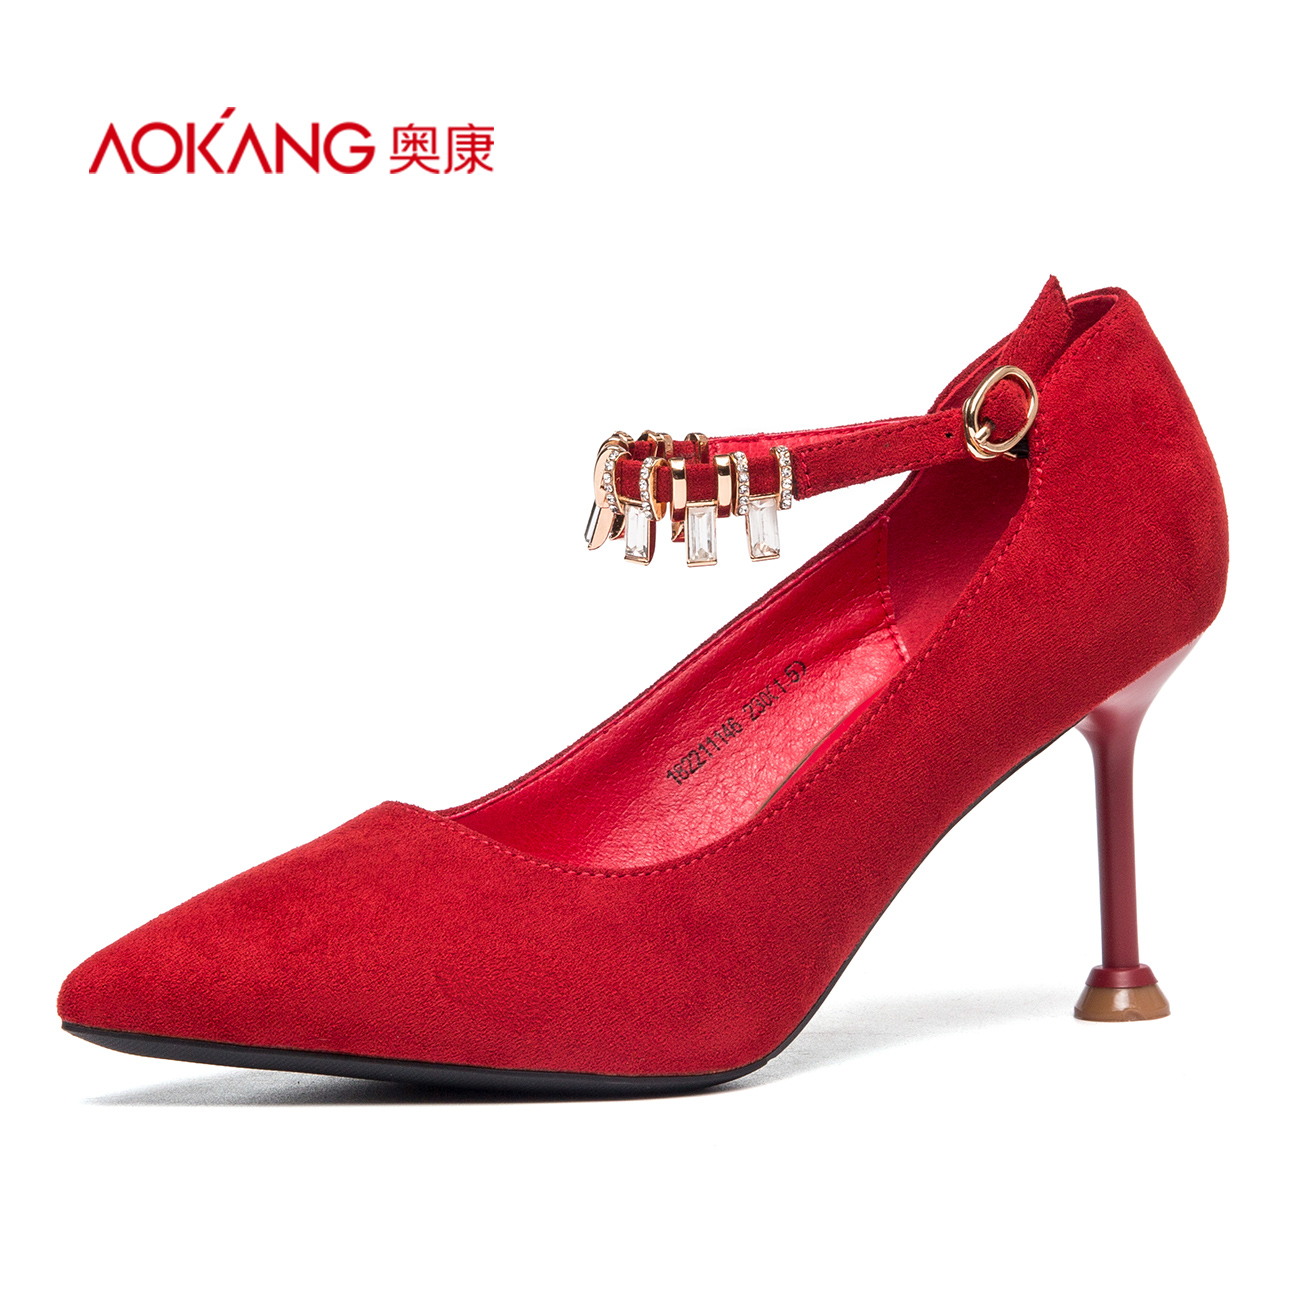 [Store delivery] Aokang women's shoes 2018 autumn new pointed high-heeled fashion female word with diamond jewelry wedding shoes